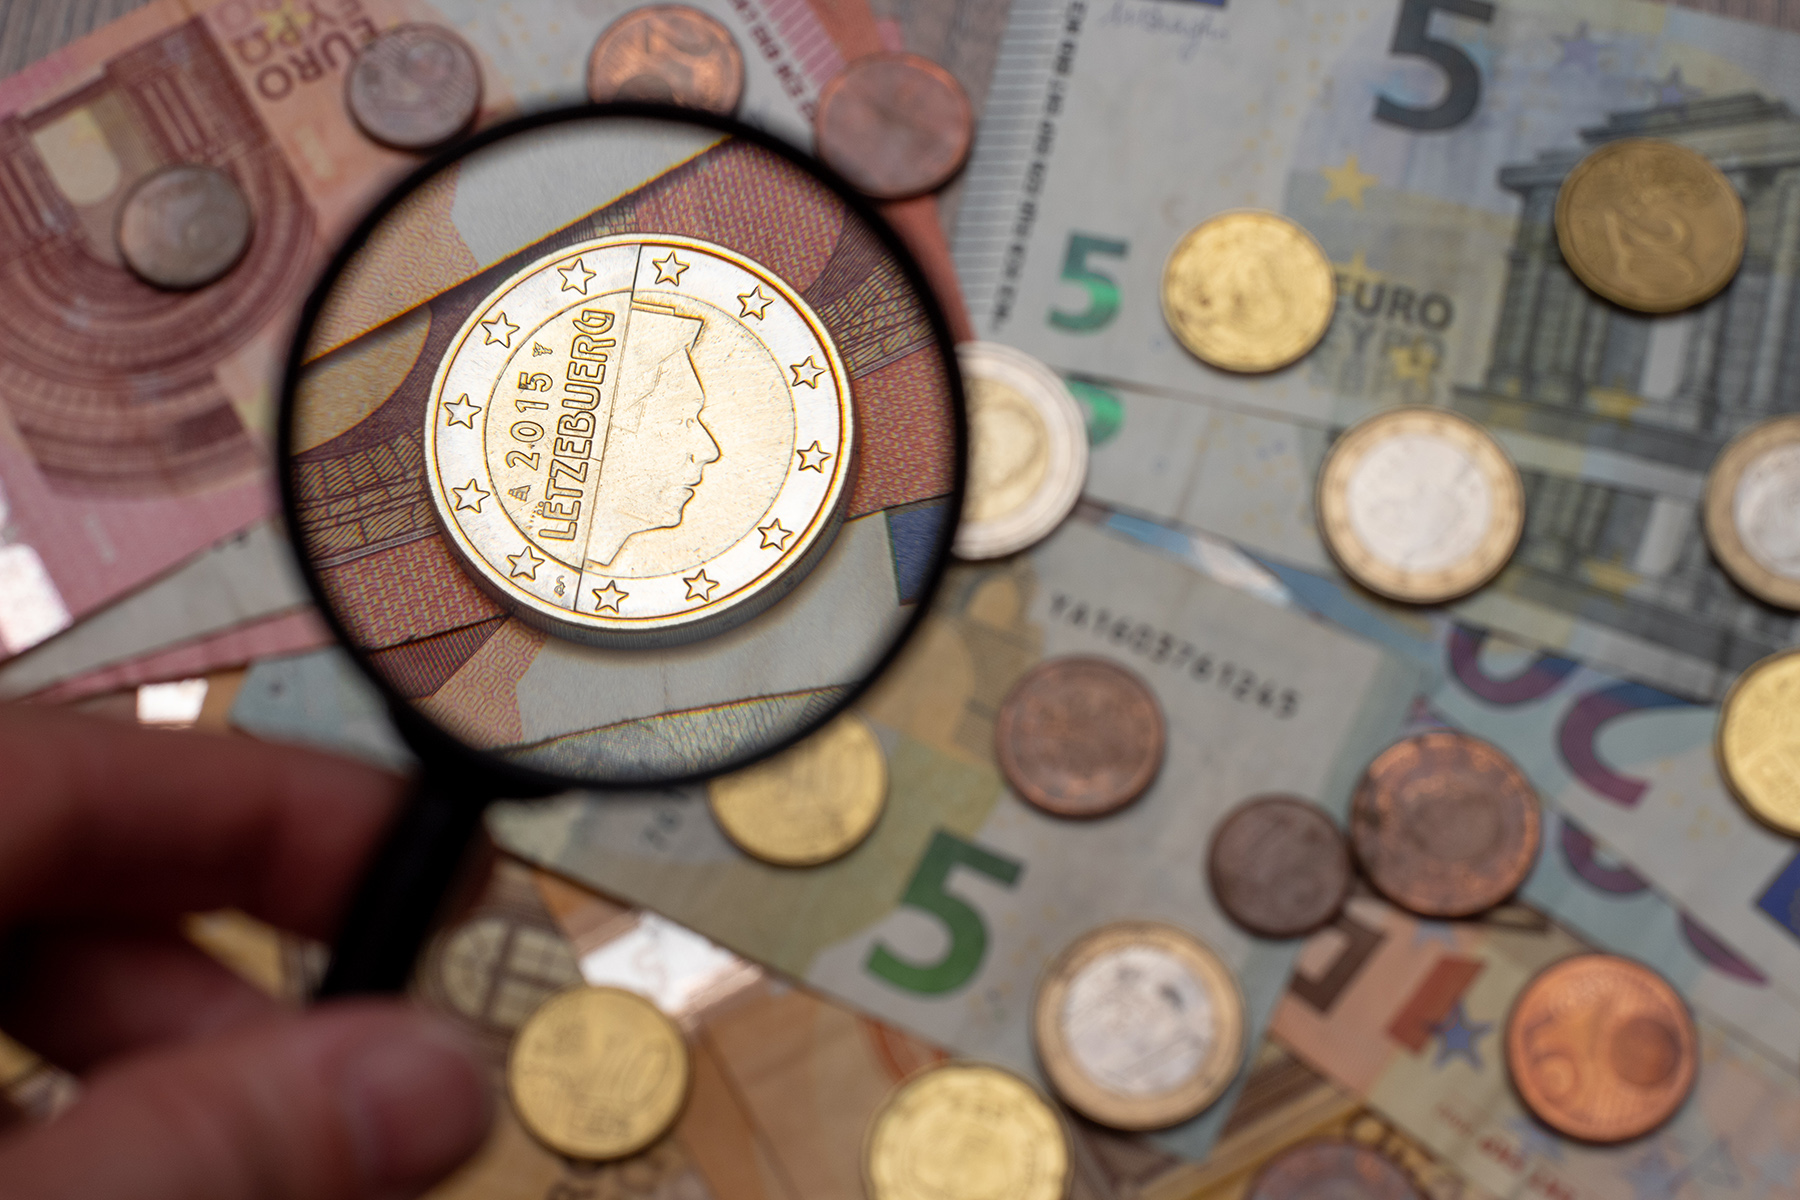 Luxembourg euro coin